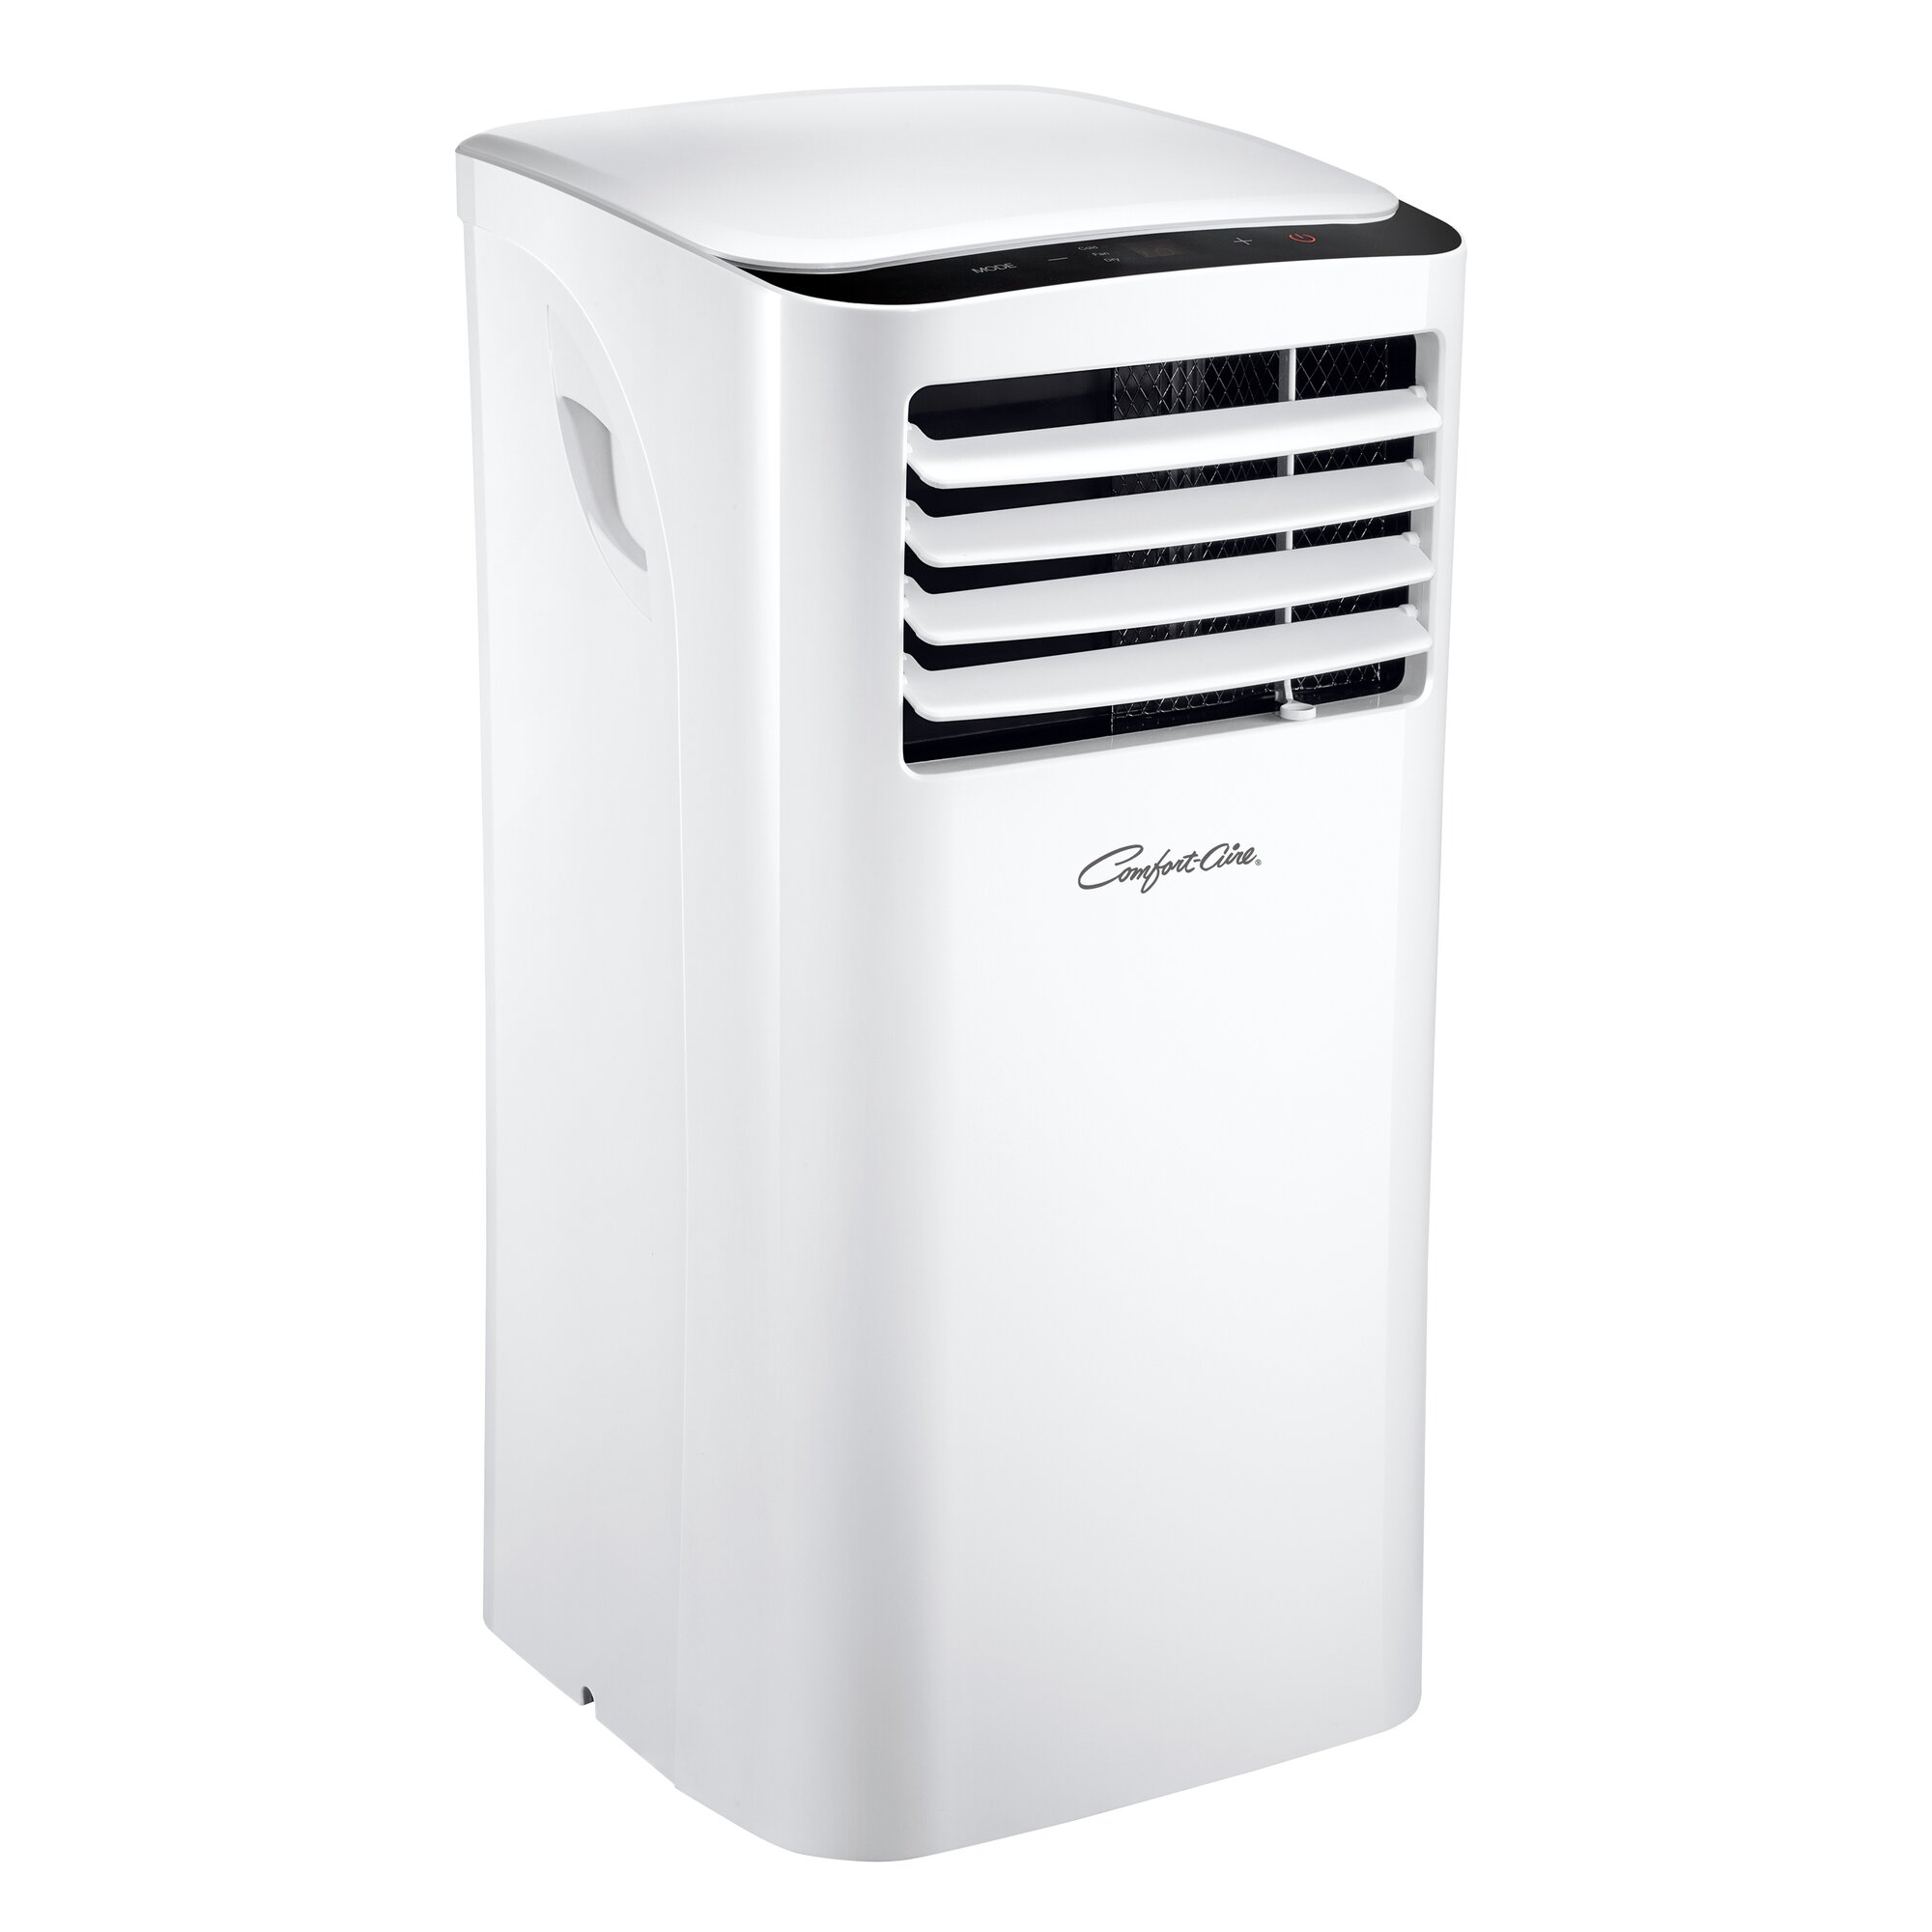 14000h btu portable air conditioner with btu window air for 11000 btu window air conditioner